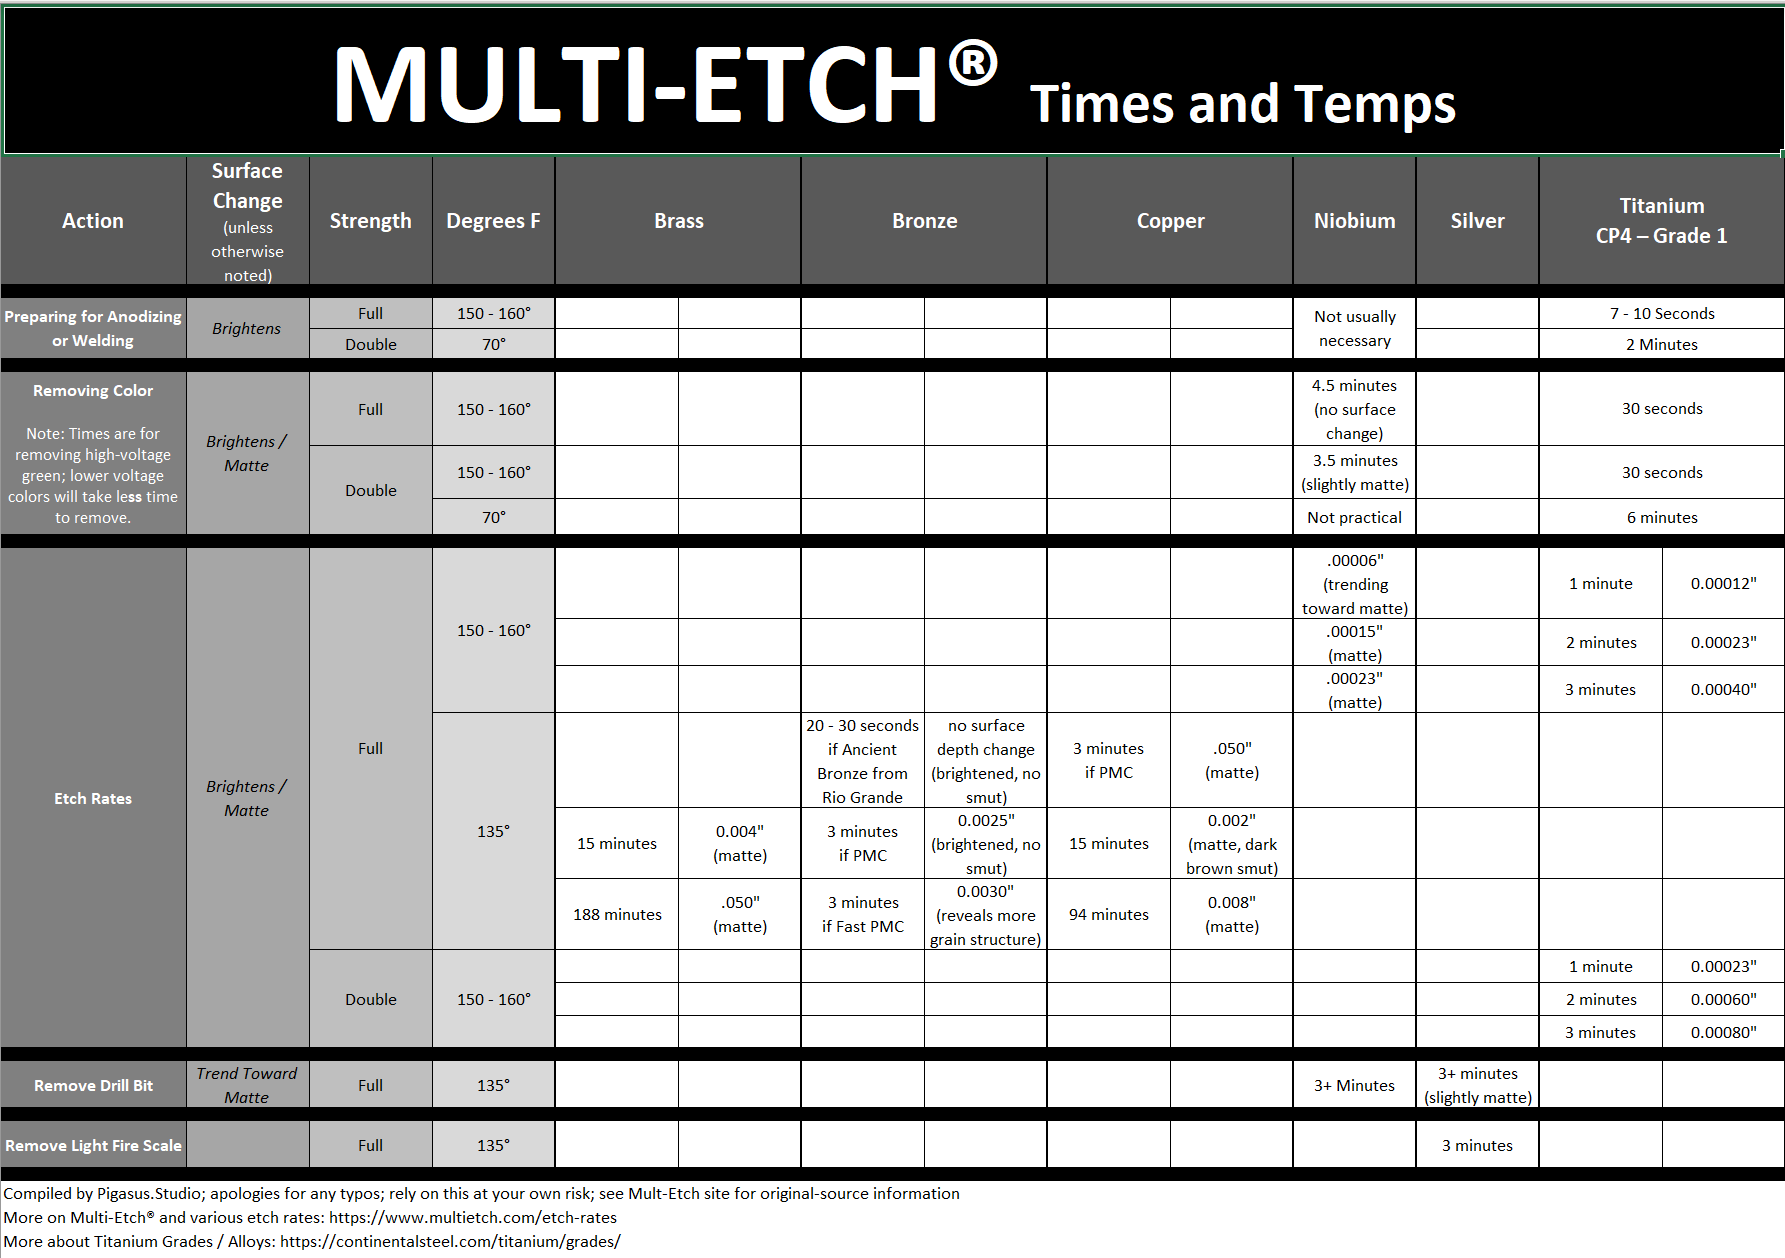 Multi-Etch® Times and Temps Chart